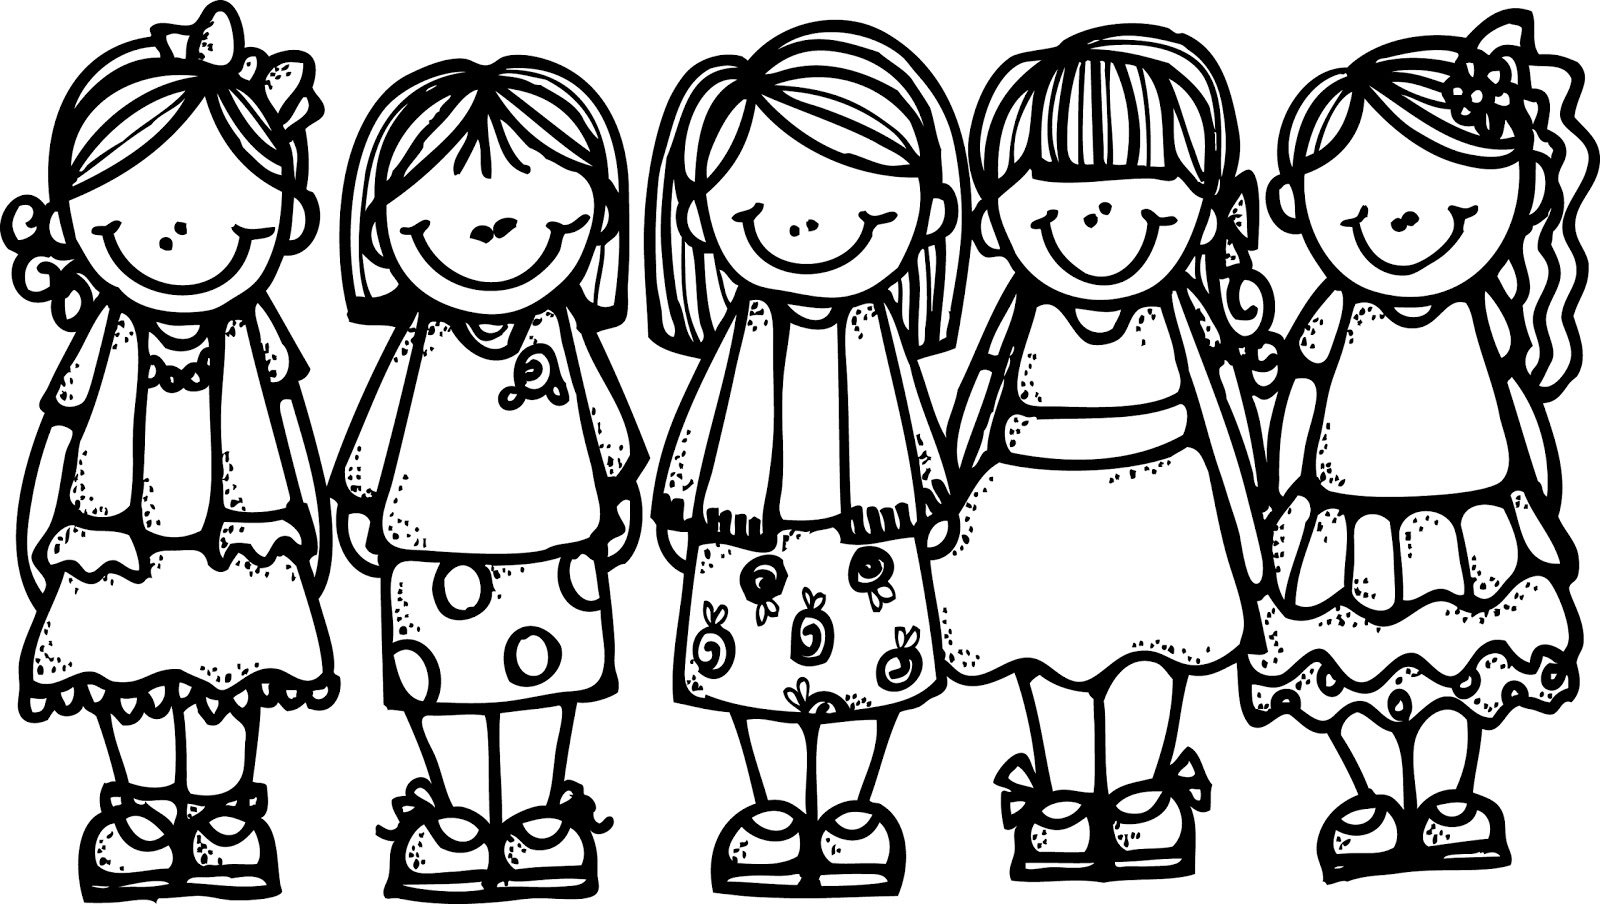 Women Black Church Missionary Clipart - Clipart Kid